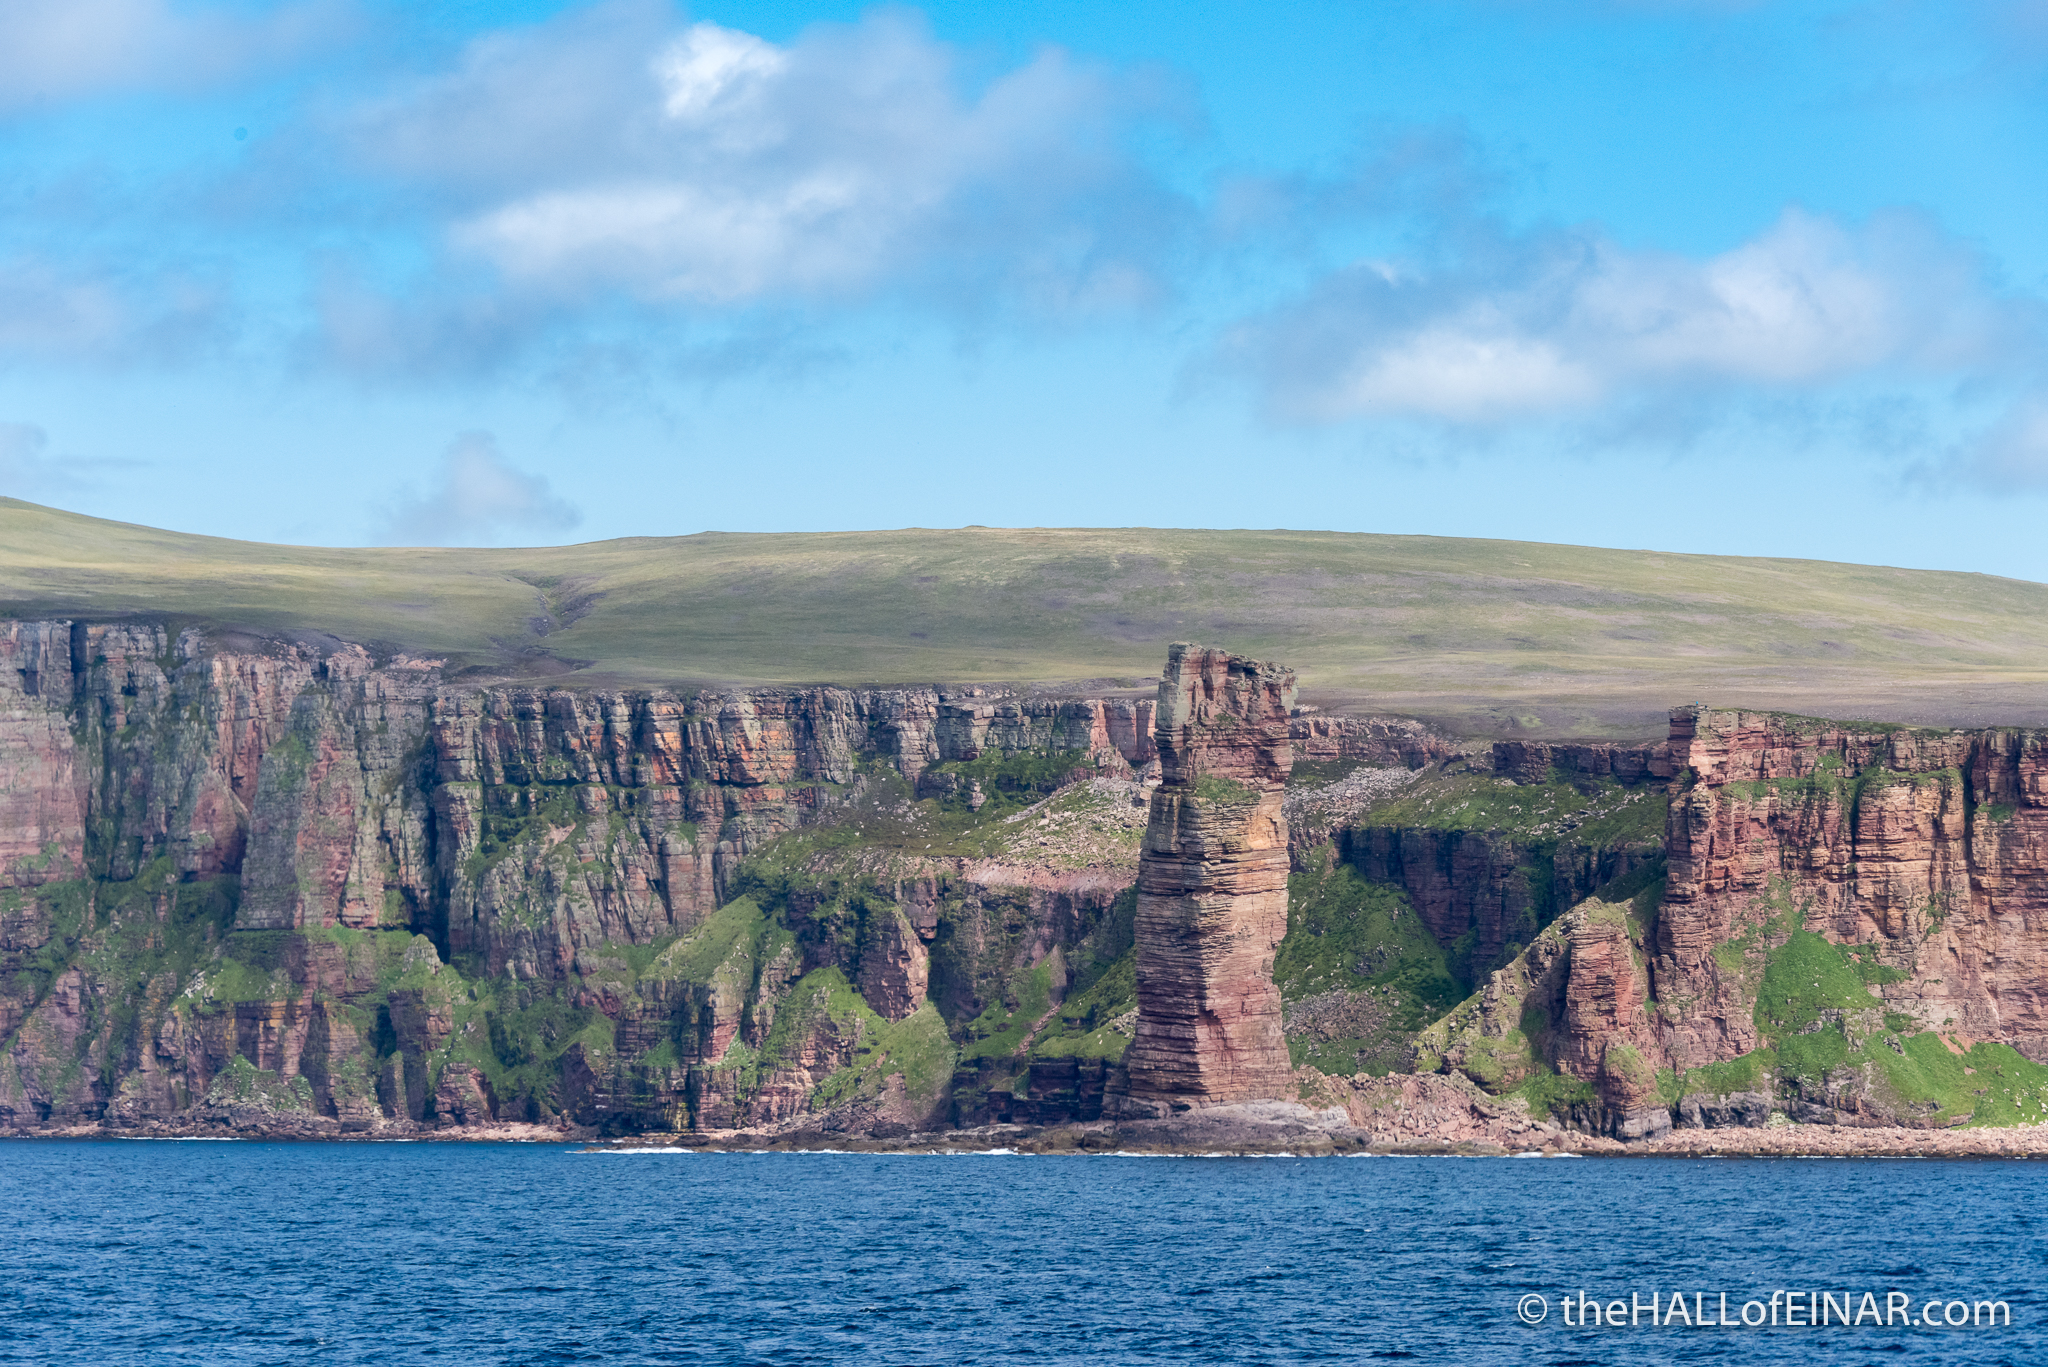 The Old Man of Hoy - The Hall of Einar - photograph (c) David Bailey (not the)